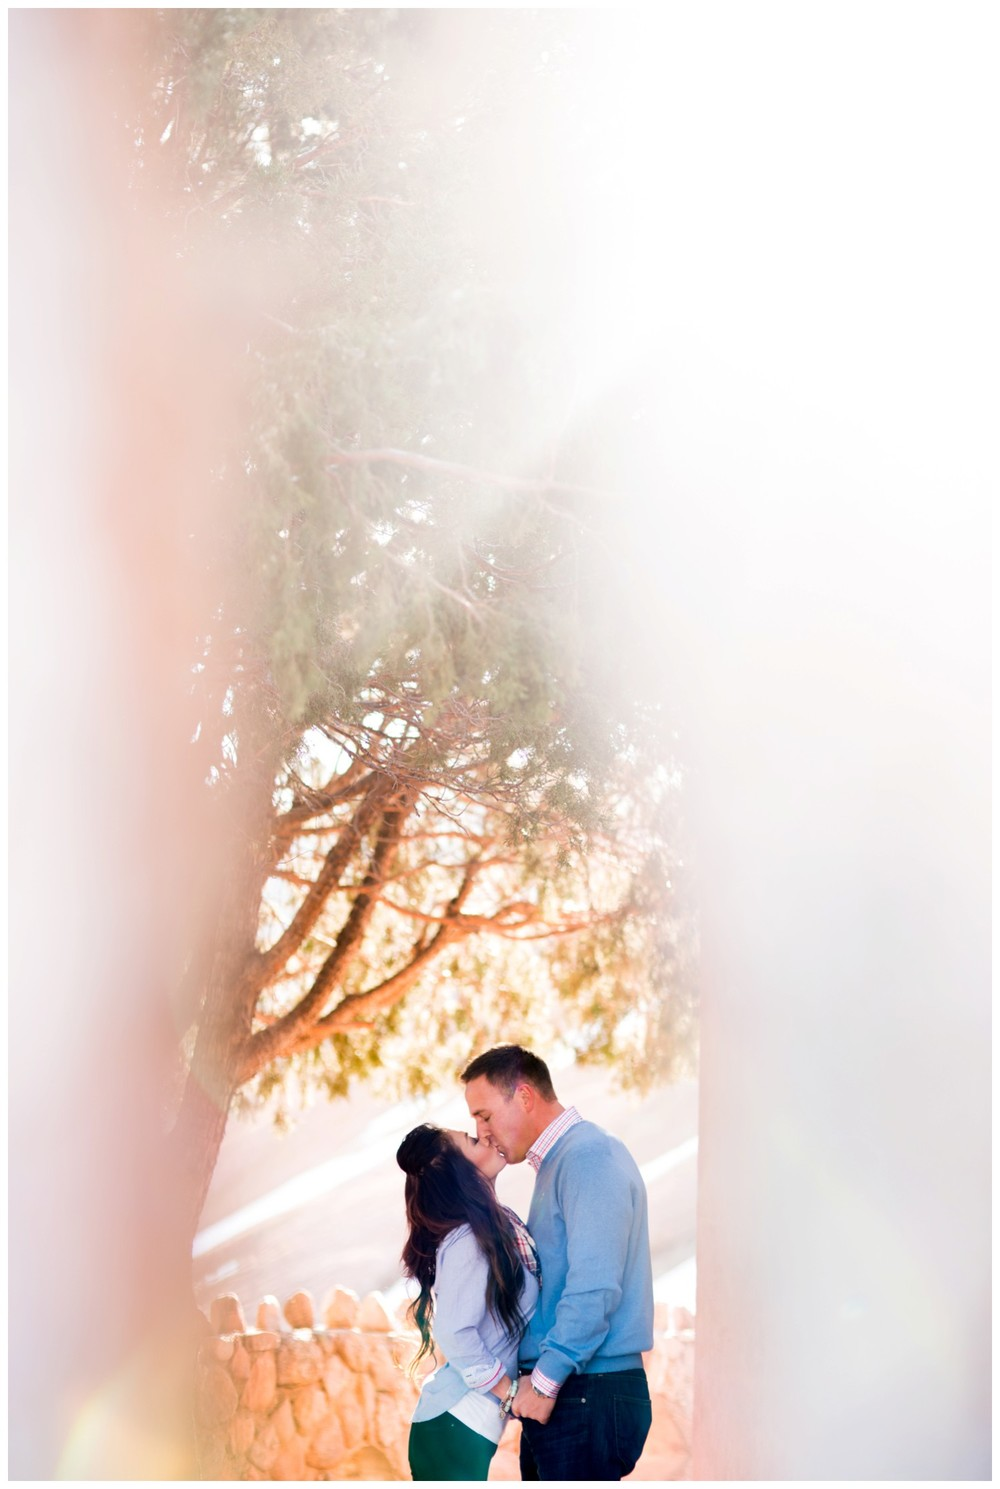 creative engagement photo of couple kissing between trees